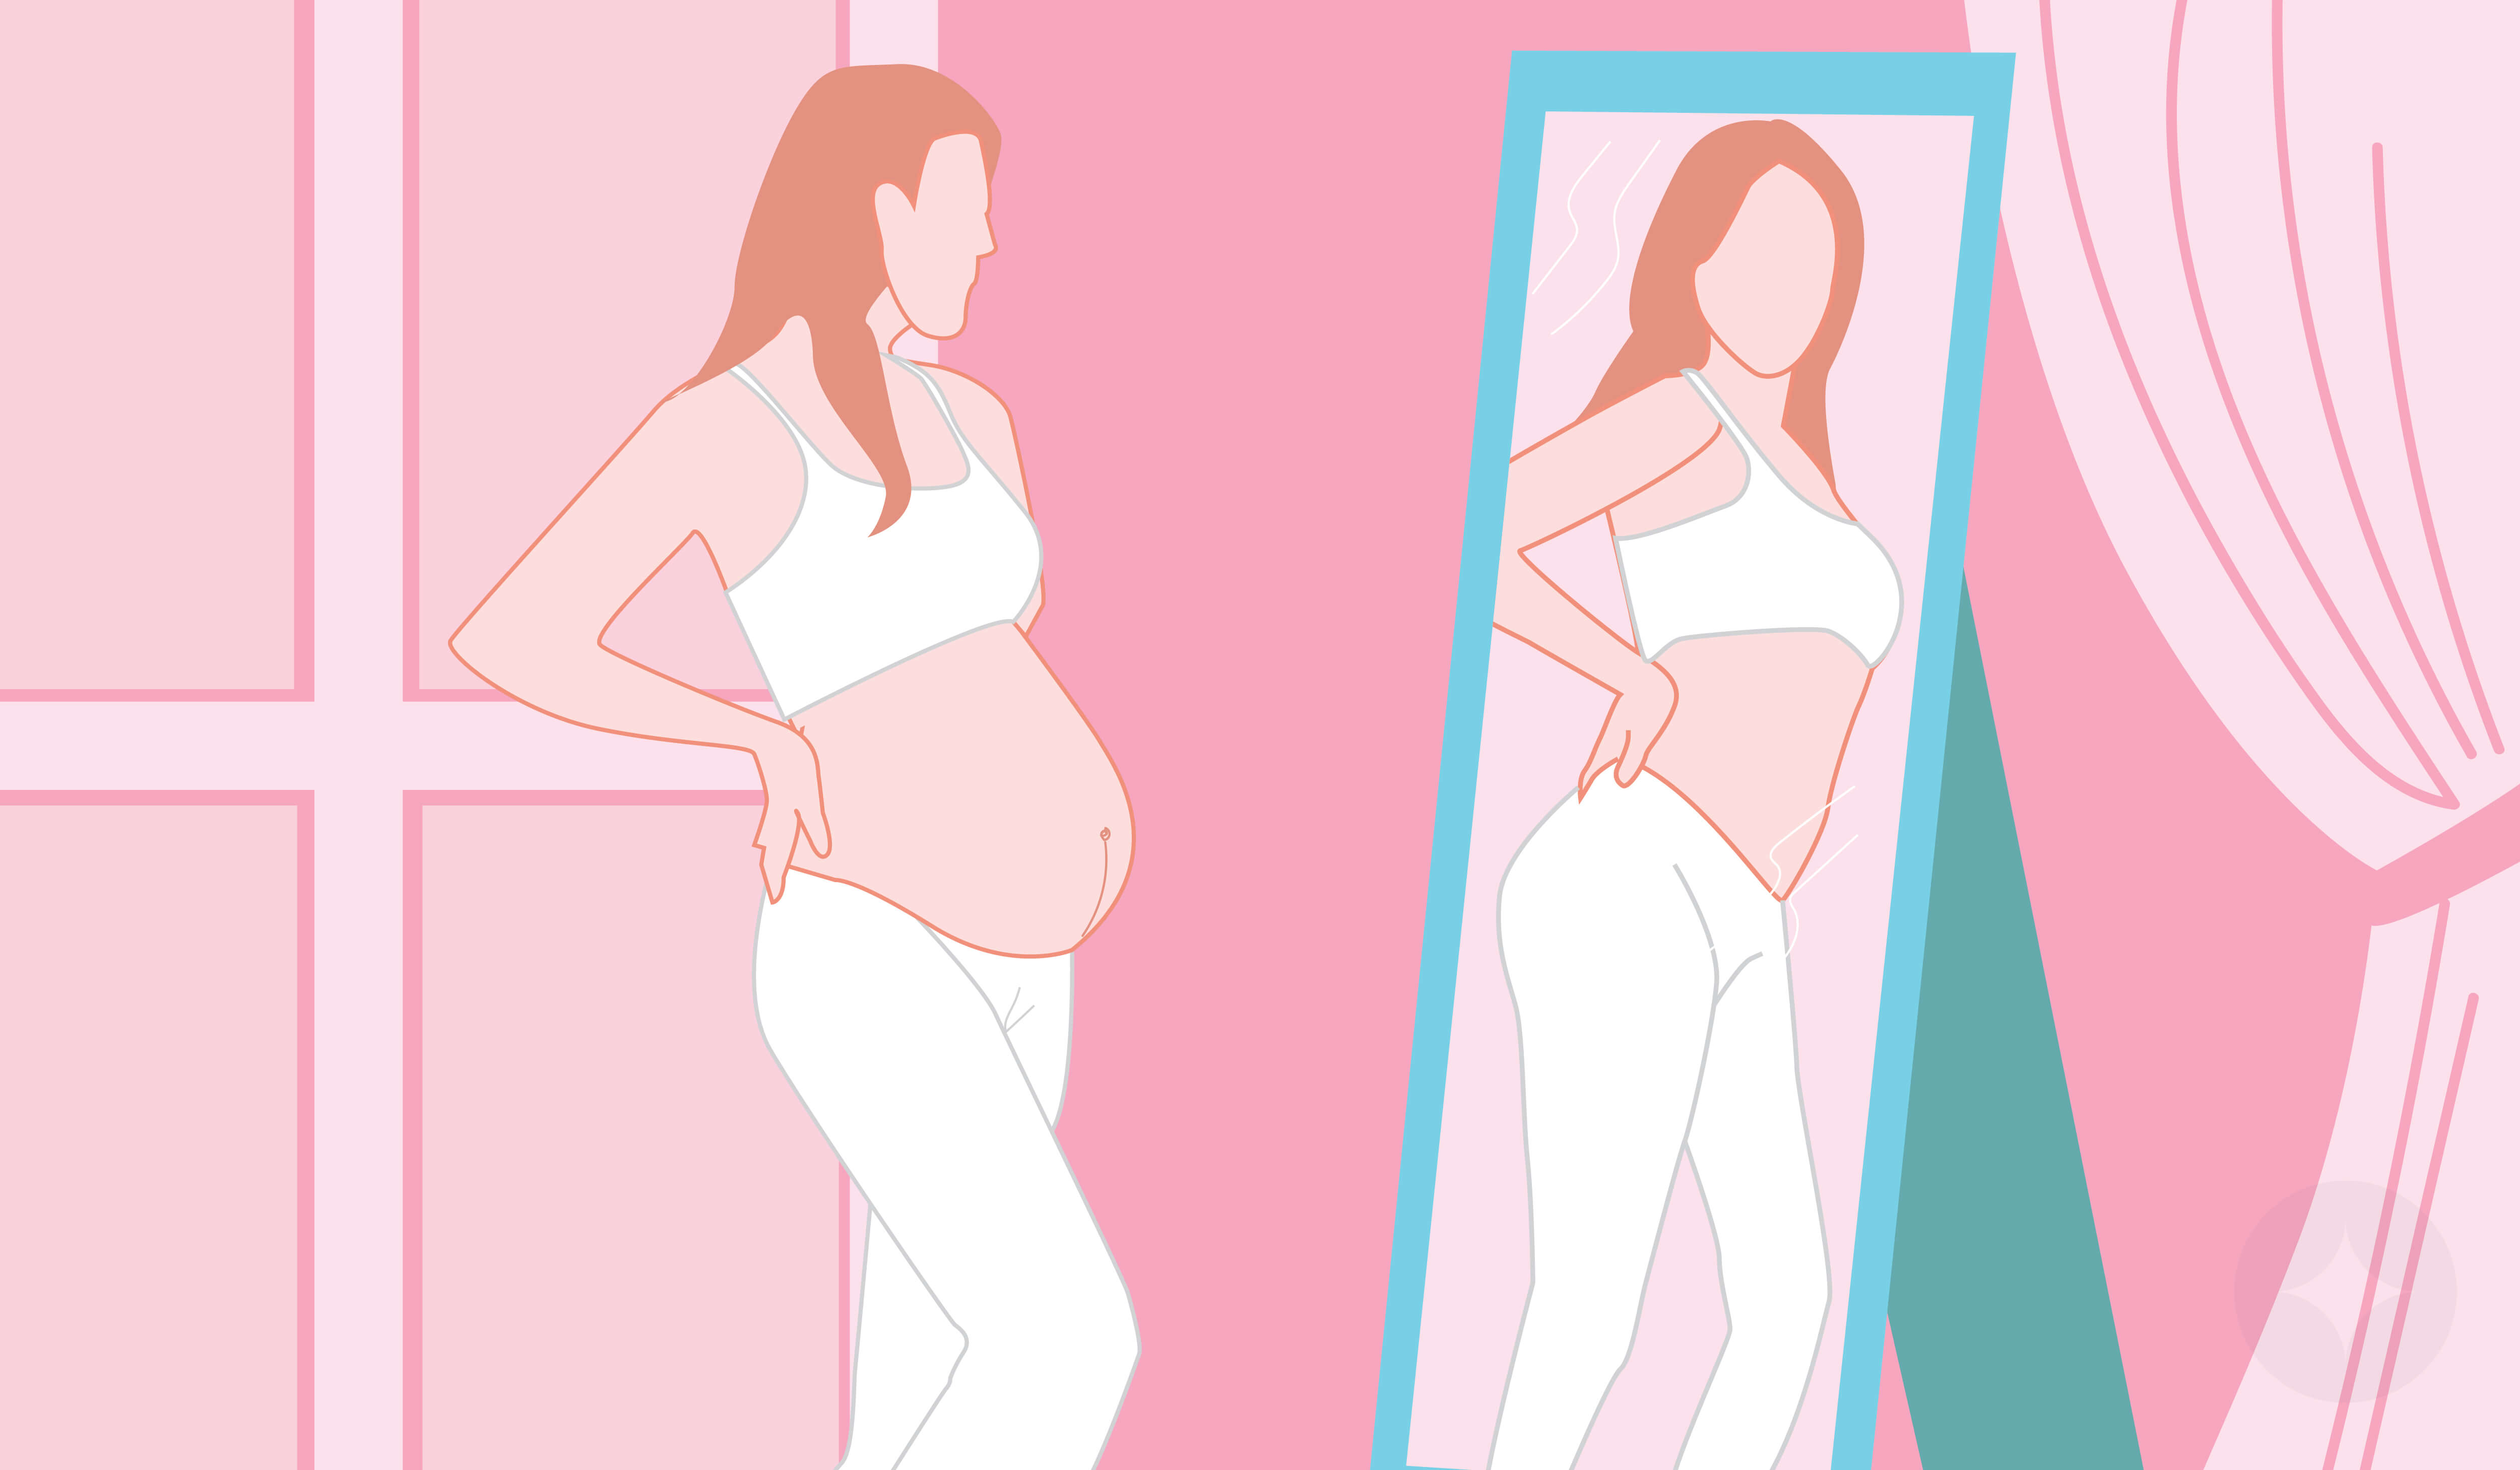 An illustration of a pregnant woman looking into the mirror checking her postpartum body in the mirror.